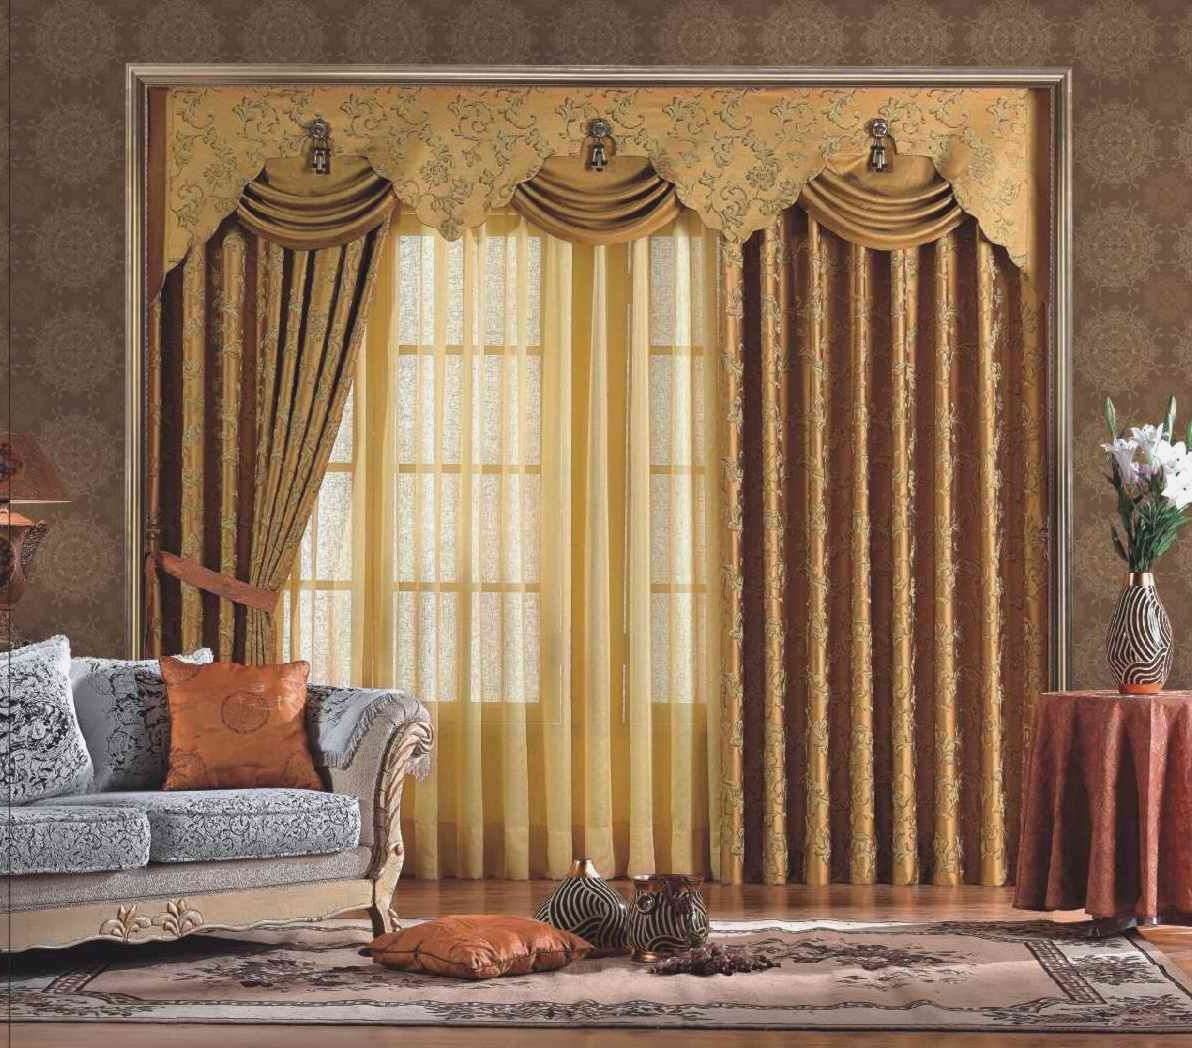 5 scallop pelmet langsir murah for Old world curtains and drapes